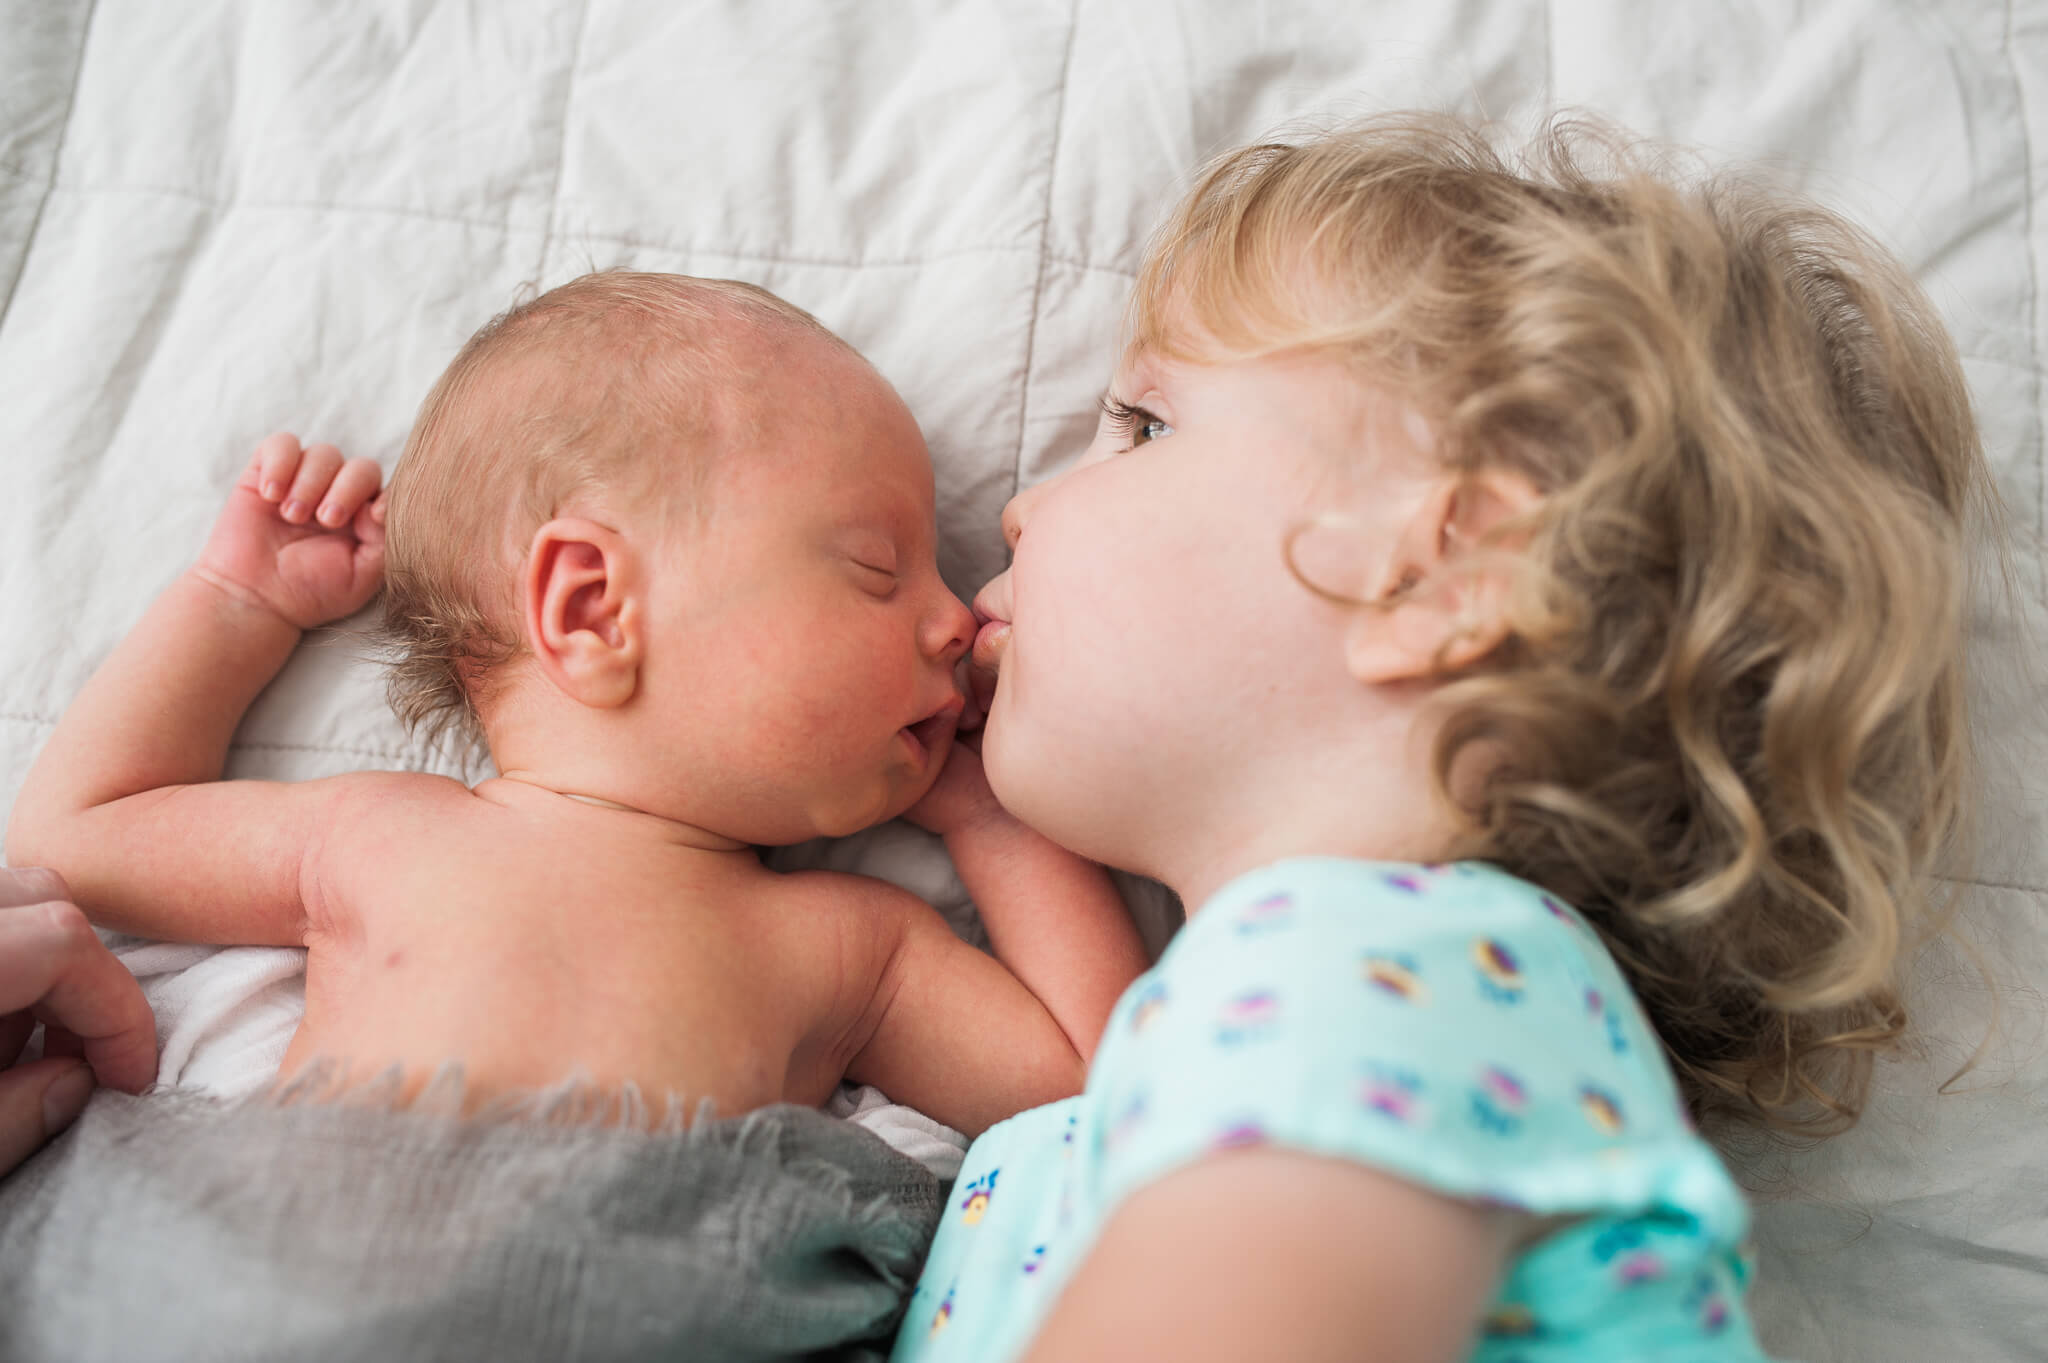 siblings big sister kisses newborn baby brother at home lying on the bed for family photo session in their NYC co-op apartment photo by Lindsey Victoria Photography